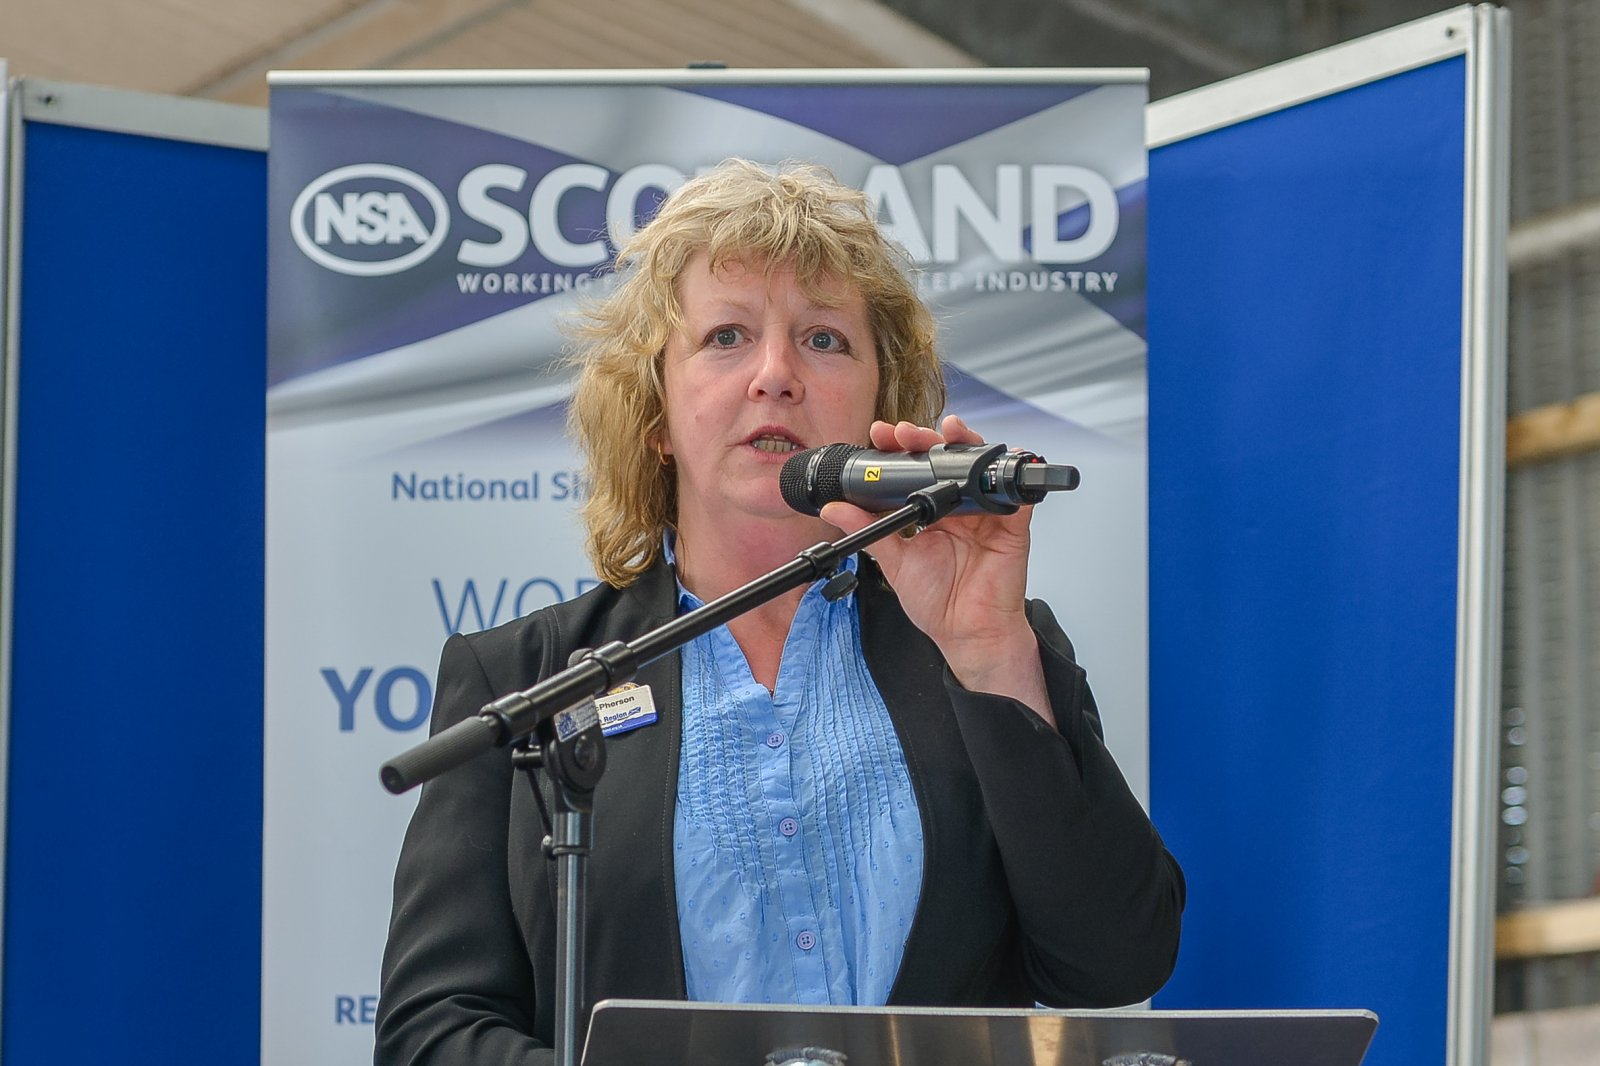 Sybil Macpherson, NSA Scottish Region Chairman, welcomes visitors to NSA Scot Sheep 2016, held at Blythbank Farm, West Linton, Peeblesshire.